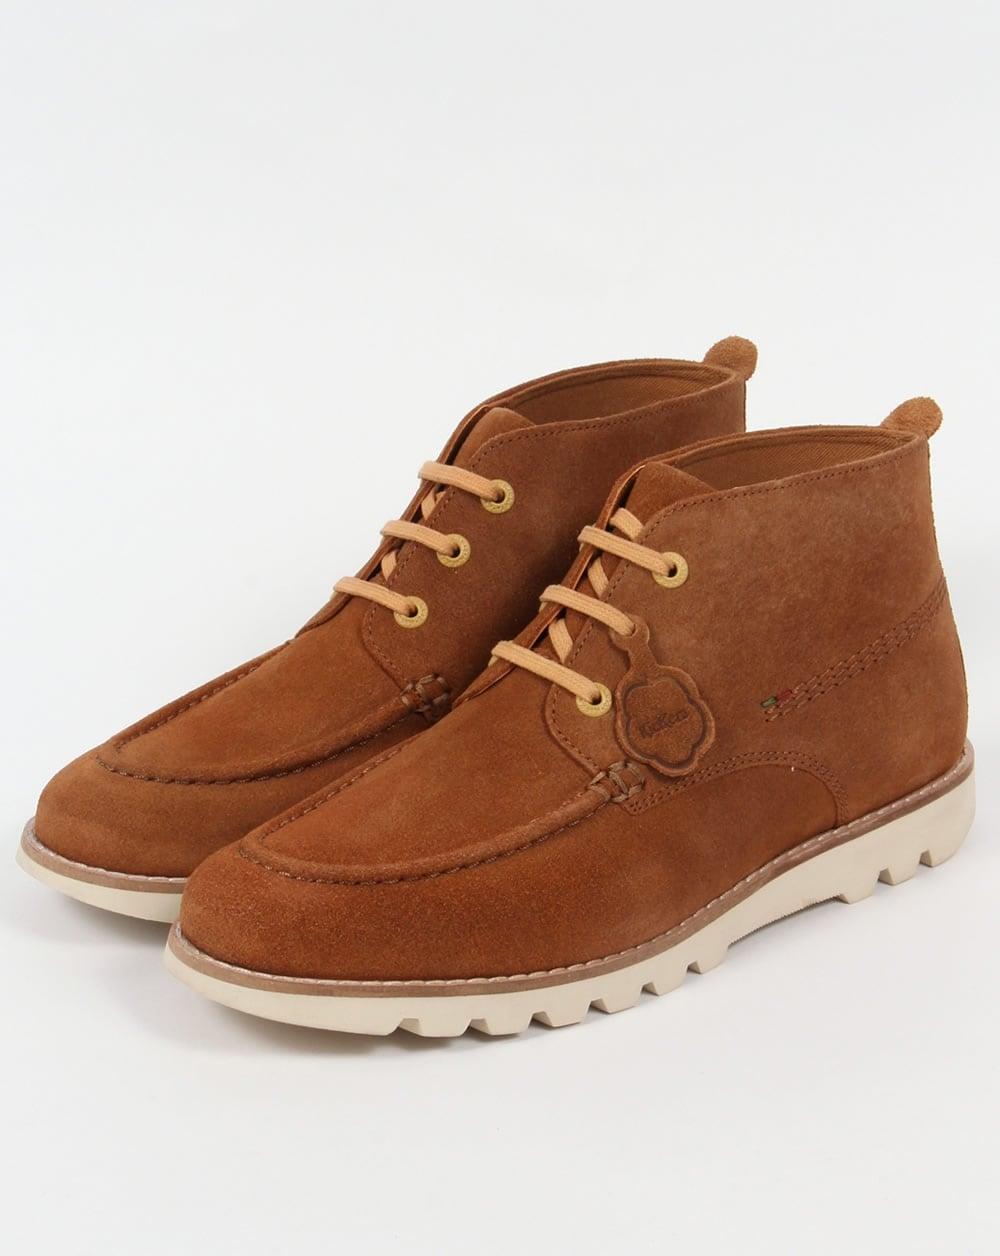 Kickers Kymbo Moccasins Suede Light Brown,boots,shoe,mens